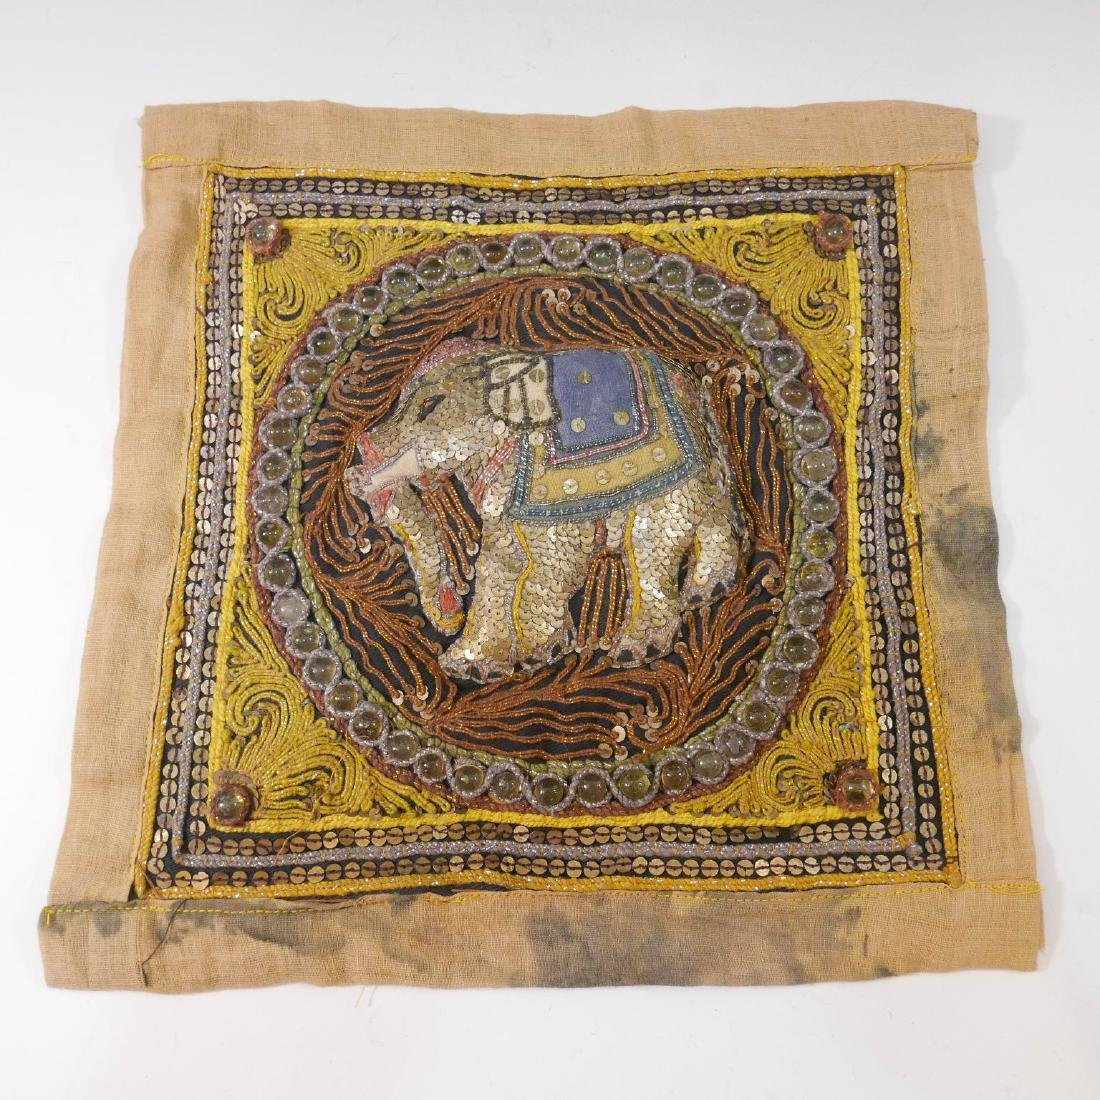 ANTIQUE INDIAN ELEPHANT EMBROIDERY